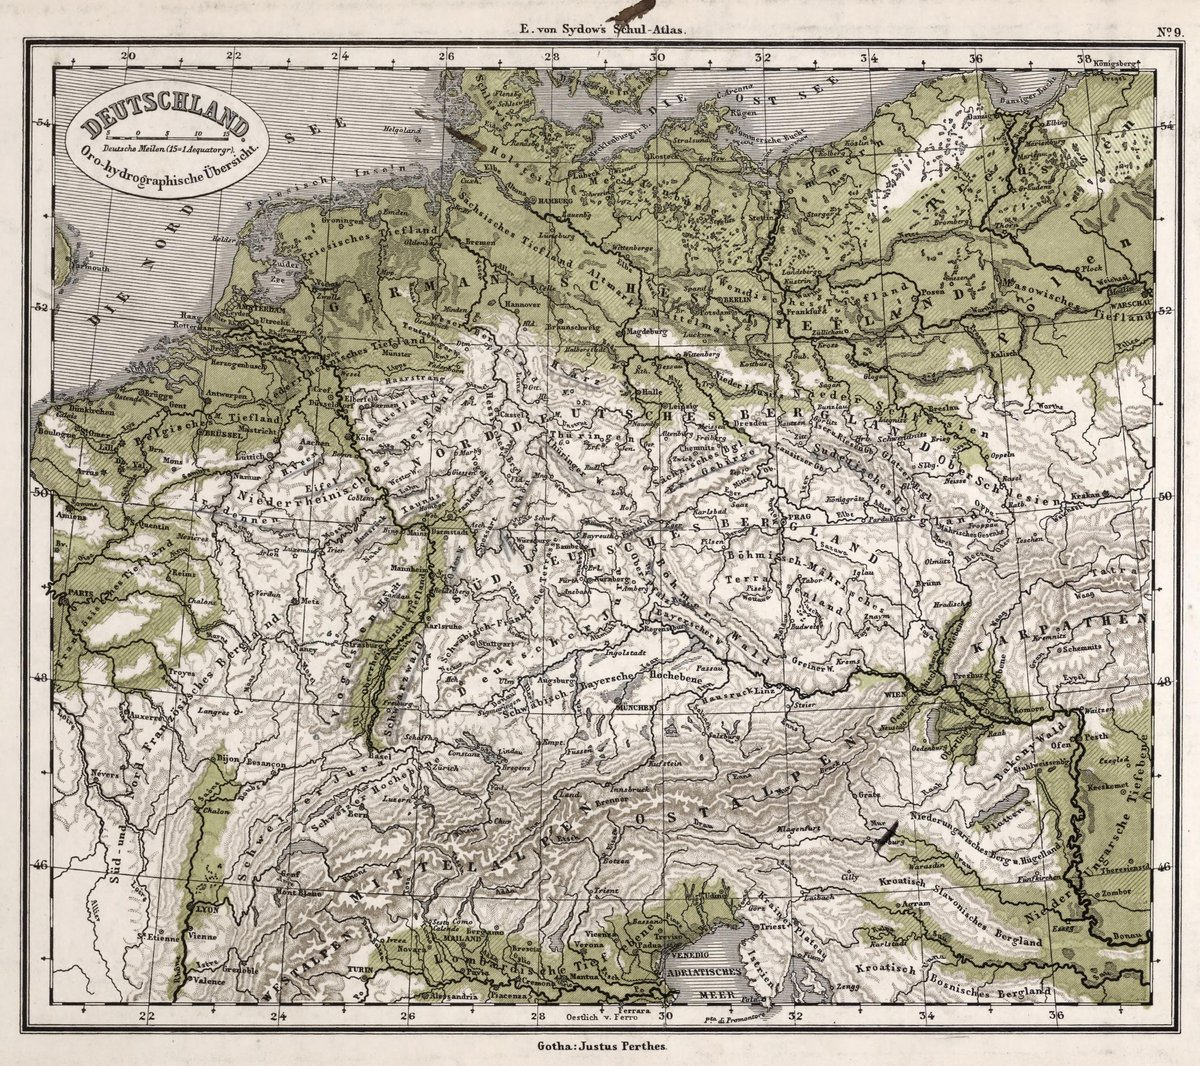 1872 School Atlas | 9. Deutschland. (Germany.) | Antique Vintage Map Reprint